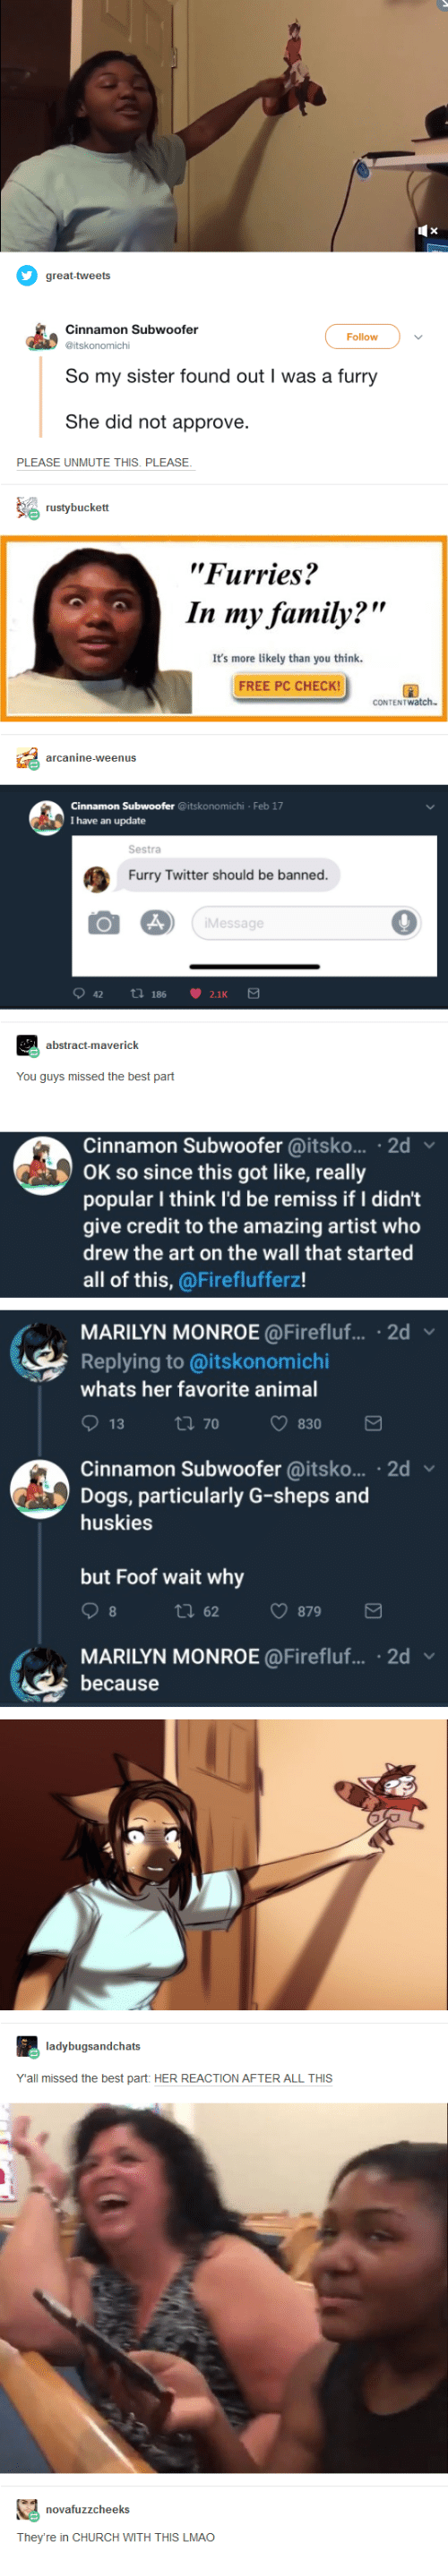 "Marilyn Monroe: Follow  So my sister found out I was a furry  She did not approve  PLEASE UNMUTE THIS. PLEASE  ""Furries?  In my family?""  It's more likely than you think  FREE PC CHECK  Feb 17  I have an update  Sestra  Furry Twitter should be banned.  Message  You guys missed the best part  Cinnamon Subwoofer @itsko... 2d  OK so since this got like, really  popular I think l'd be remiss if I didn't  give credit to the amazing artist who  drew the art on the wall that started  all of this, @Fireflufferz!  MARILYN MONROE@Firefluf.... 2d  Replying to @itskonomichi  whats her favorite anima  Cinnamon Subwoofer @itsko... 2d  Dogs, particularly G-sheps and  huskies  but Foof wait why  tl 62 879  MARILYN MONROE @Firefluf... 2d v  because  Yall missed the best part: HER REACTION AFTER ALL THIS  They're in CHURCH WITH THIS LMAO"